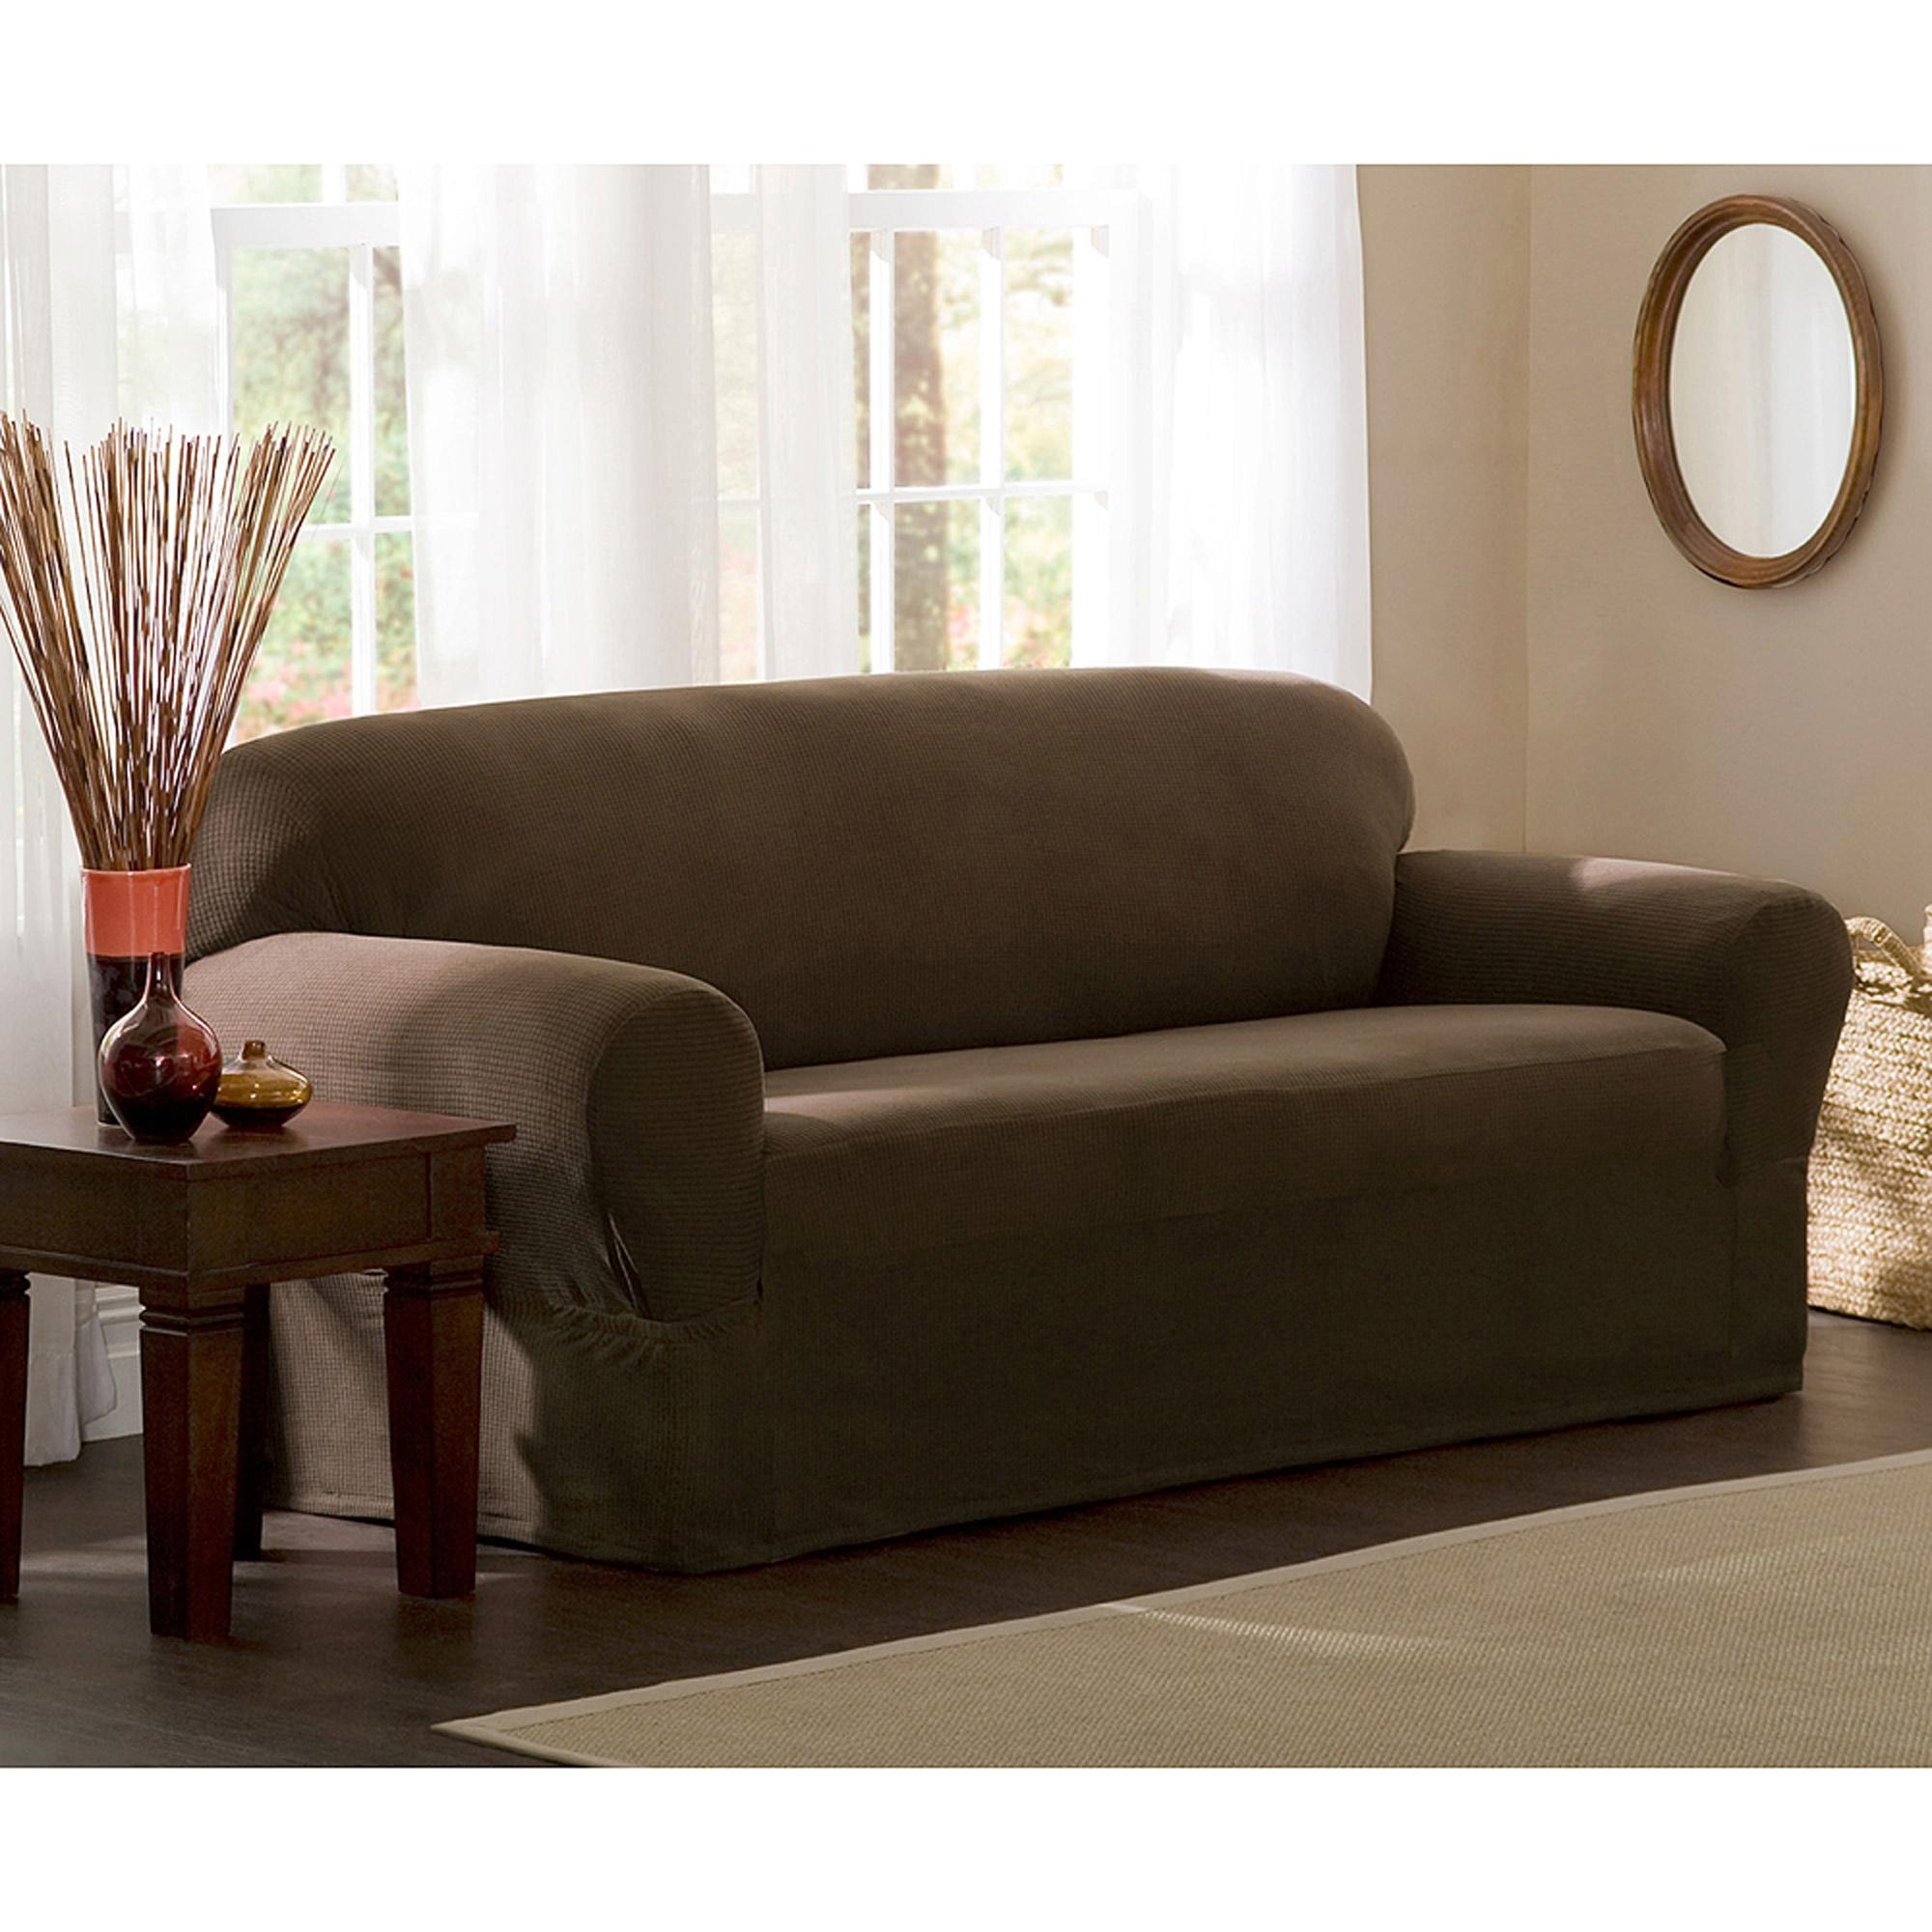 Mainstays 1 Piece Stretch Fabric Sofa Slipcover – Walmart Inside Loveseat Slipcovers T Cushion (View 3 of 20)